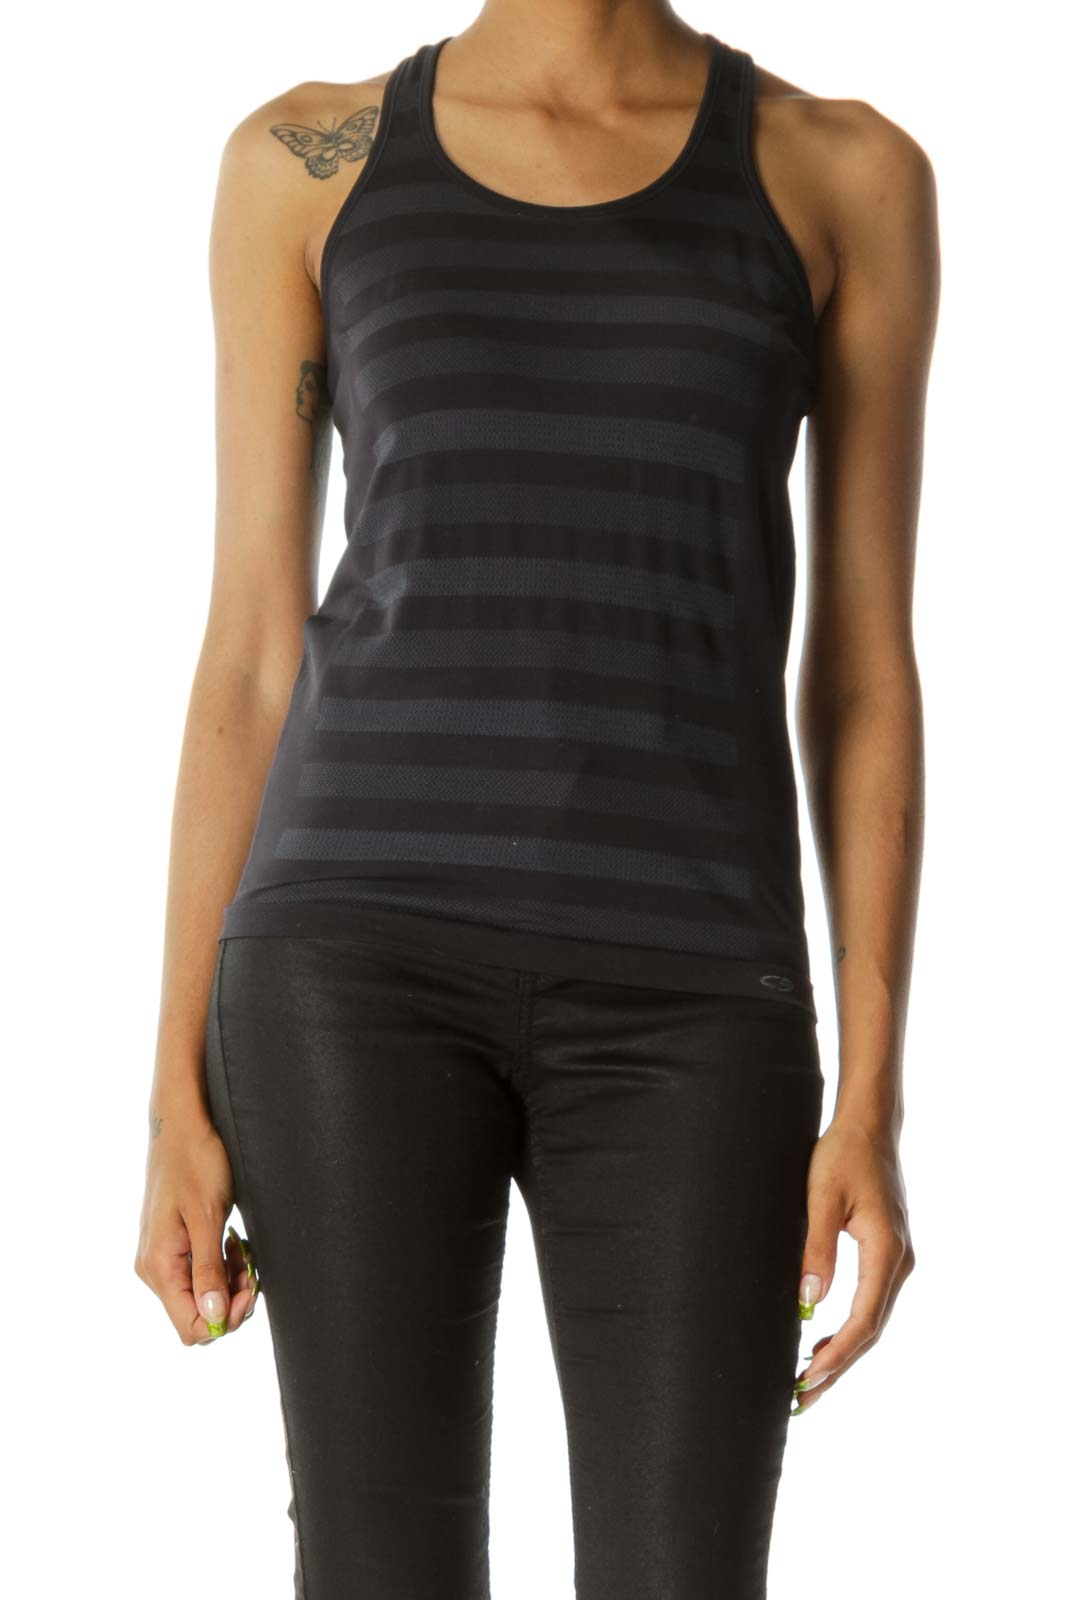 Black & Gray Thick-Striped Racer-Back Yoga Tank